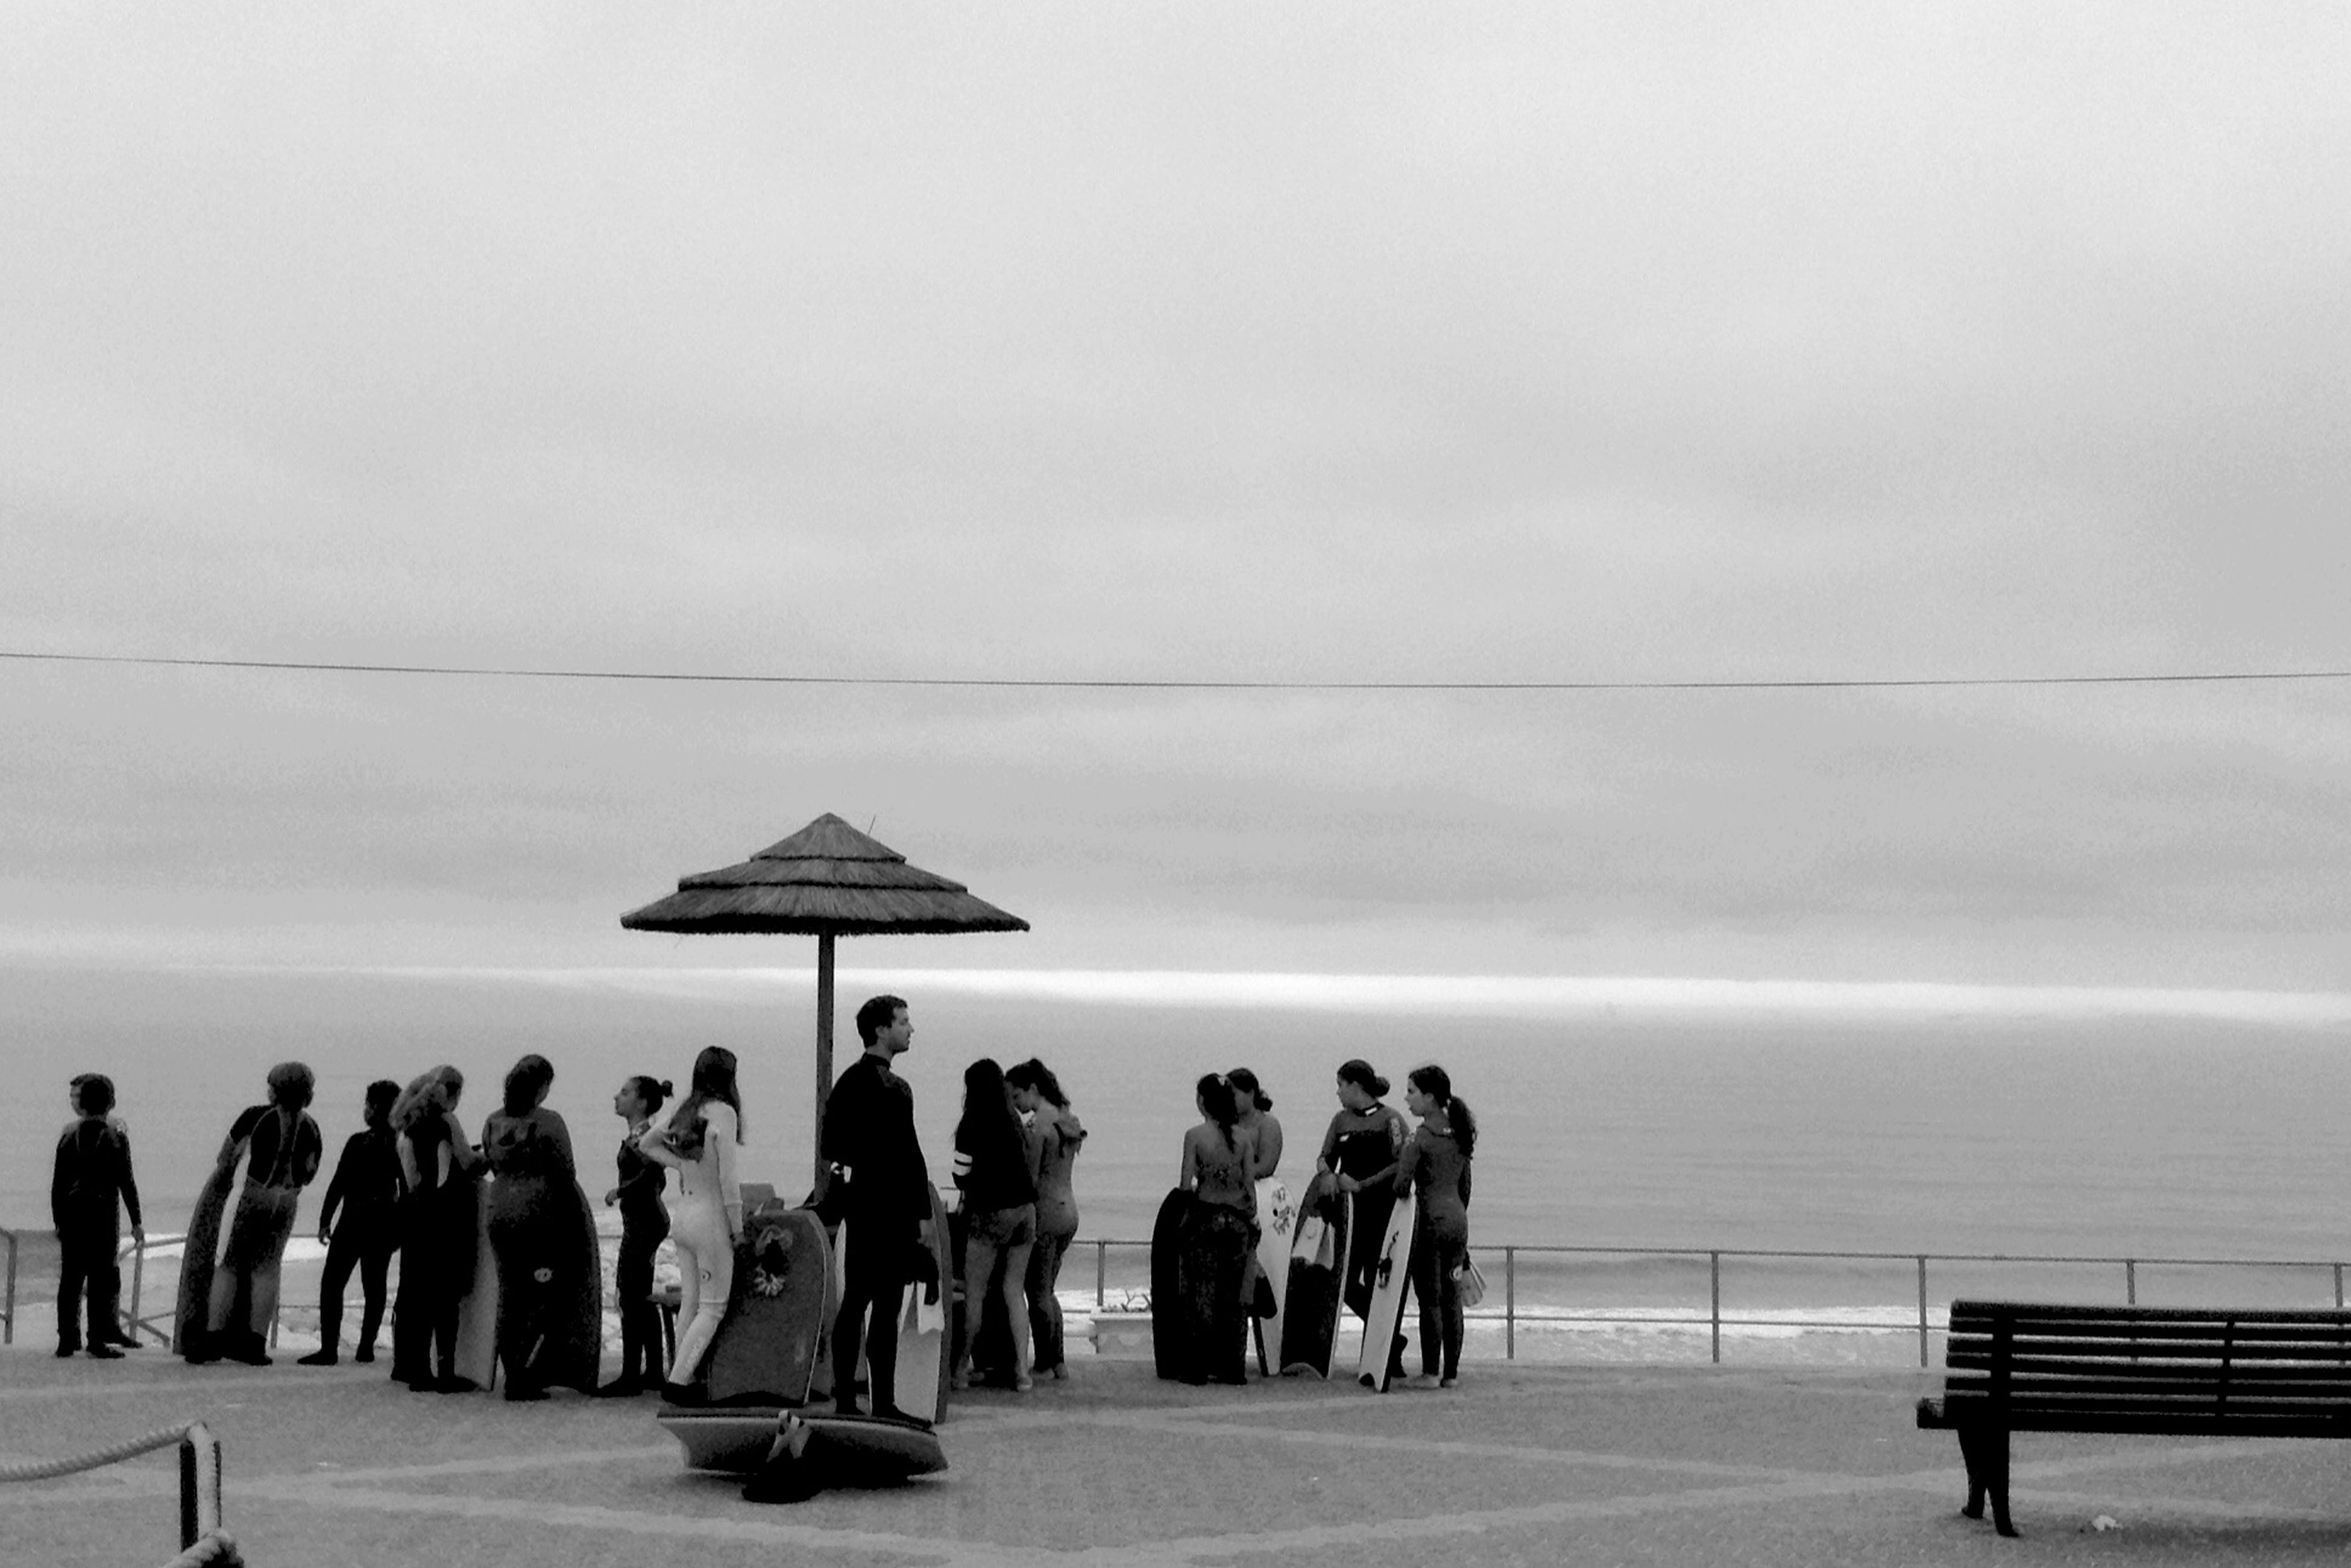 sea, horizon over water, men, large group of people, person, sky, lifestyles, leisure activity, water, walking, vacations, beach, standing, copy space, tourist, tourism, scenics, travel, tranquil scene